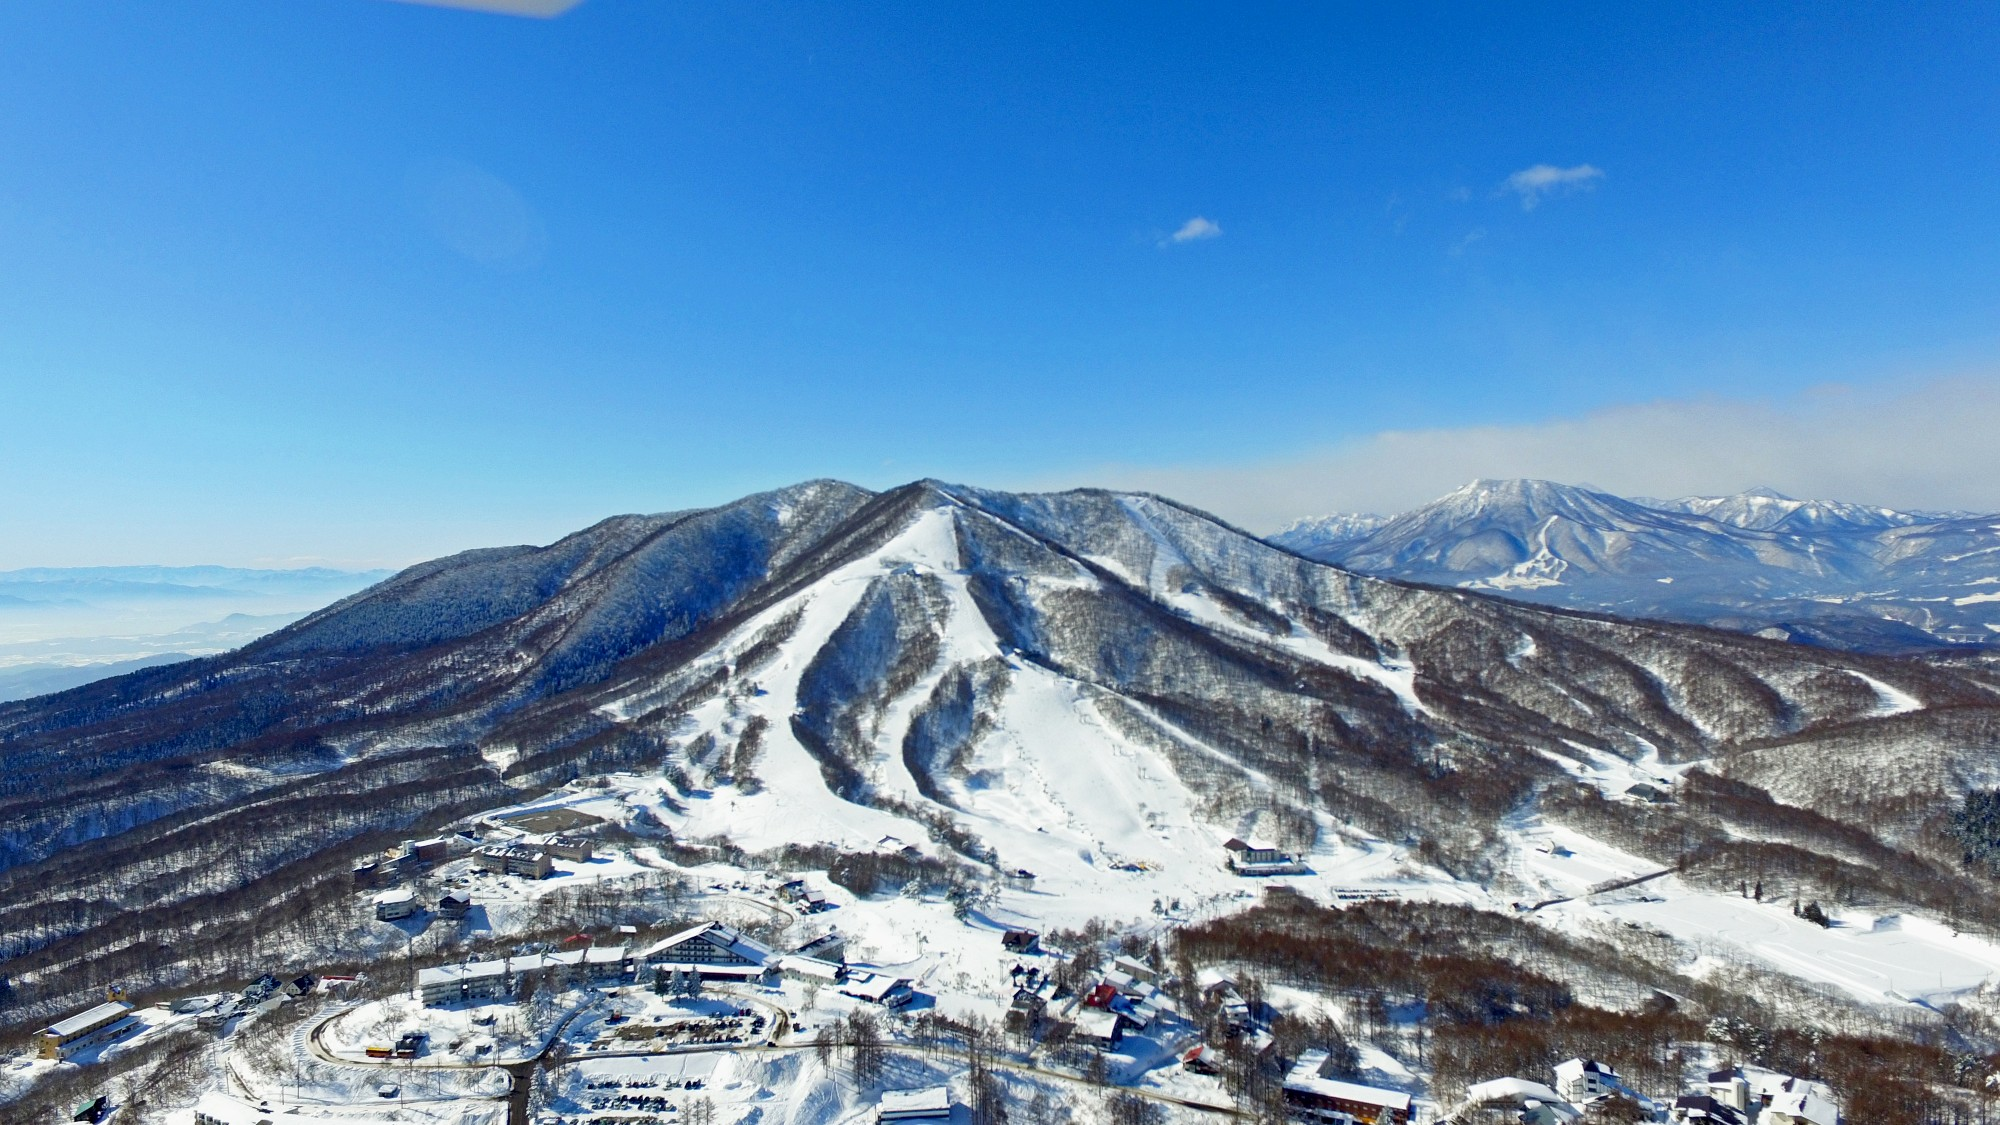 How to Get to Madarao – Nagano Ski Resorts Info